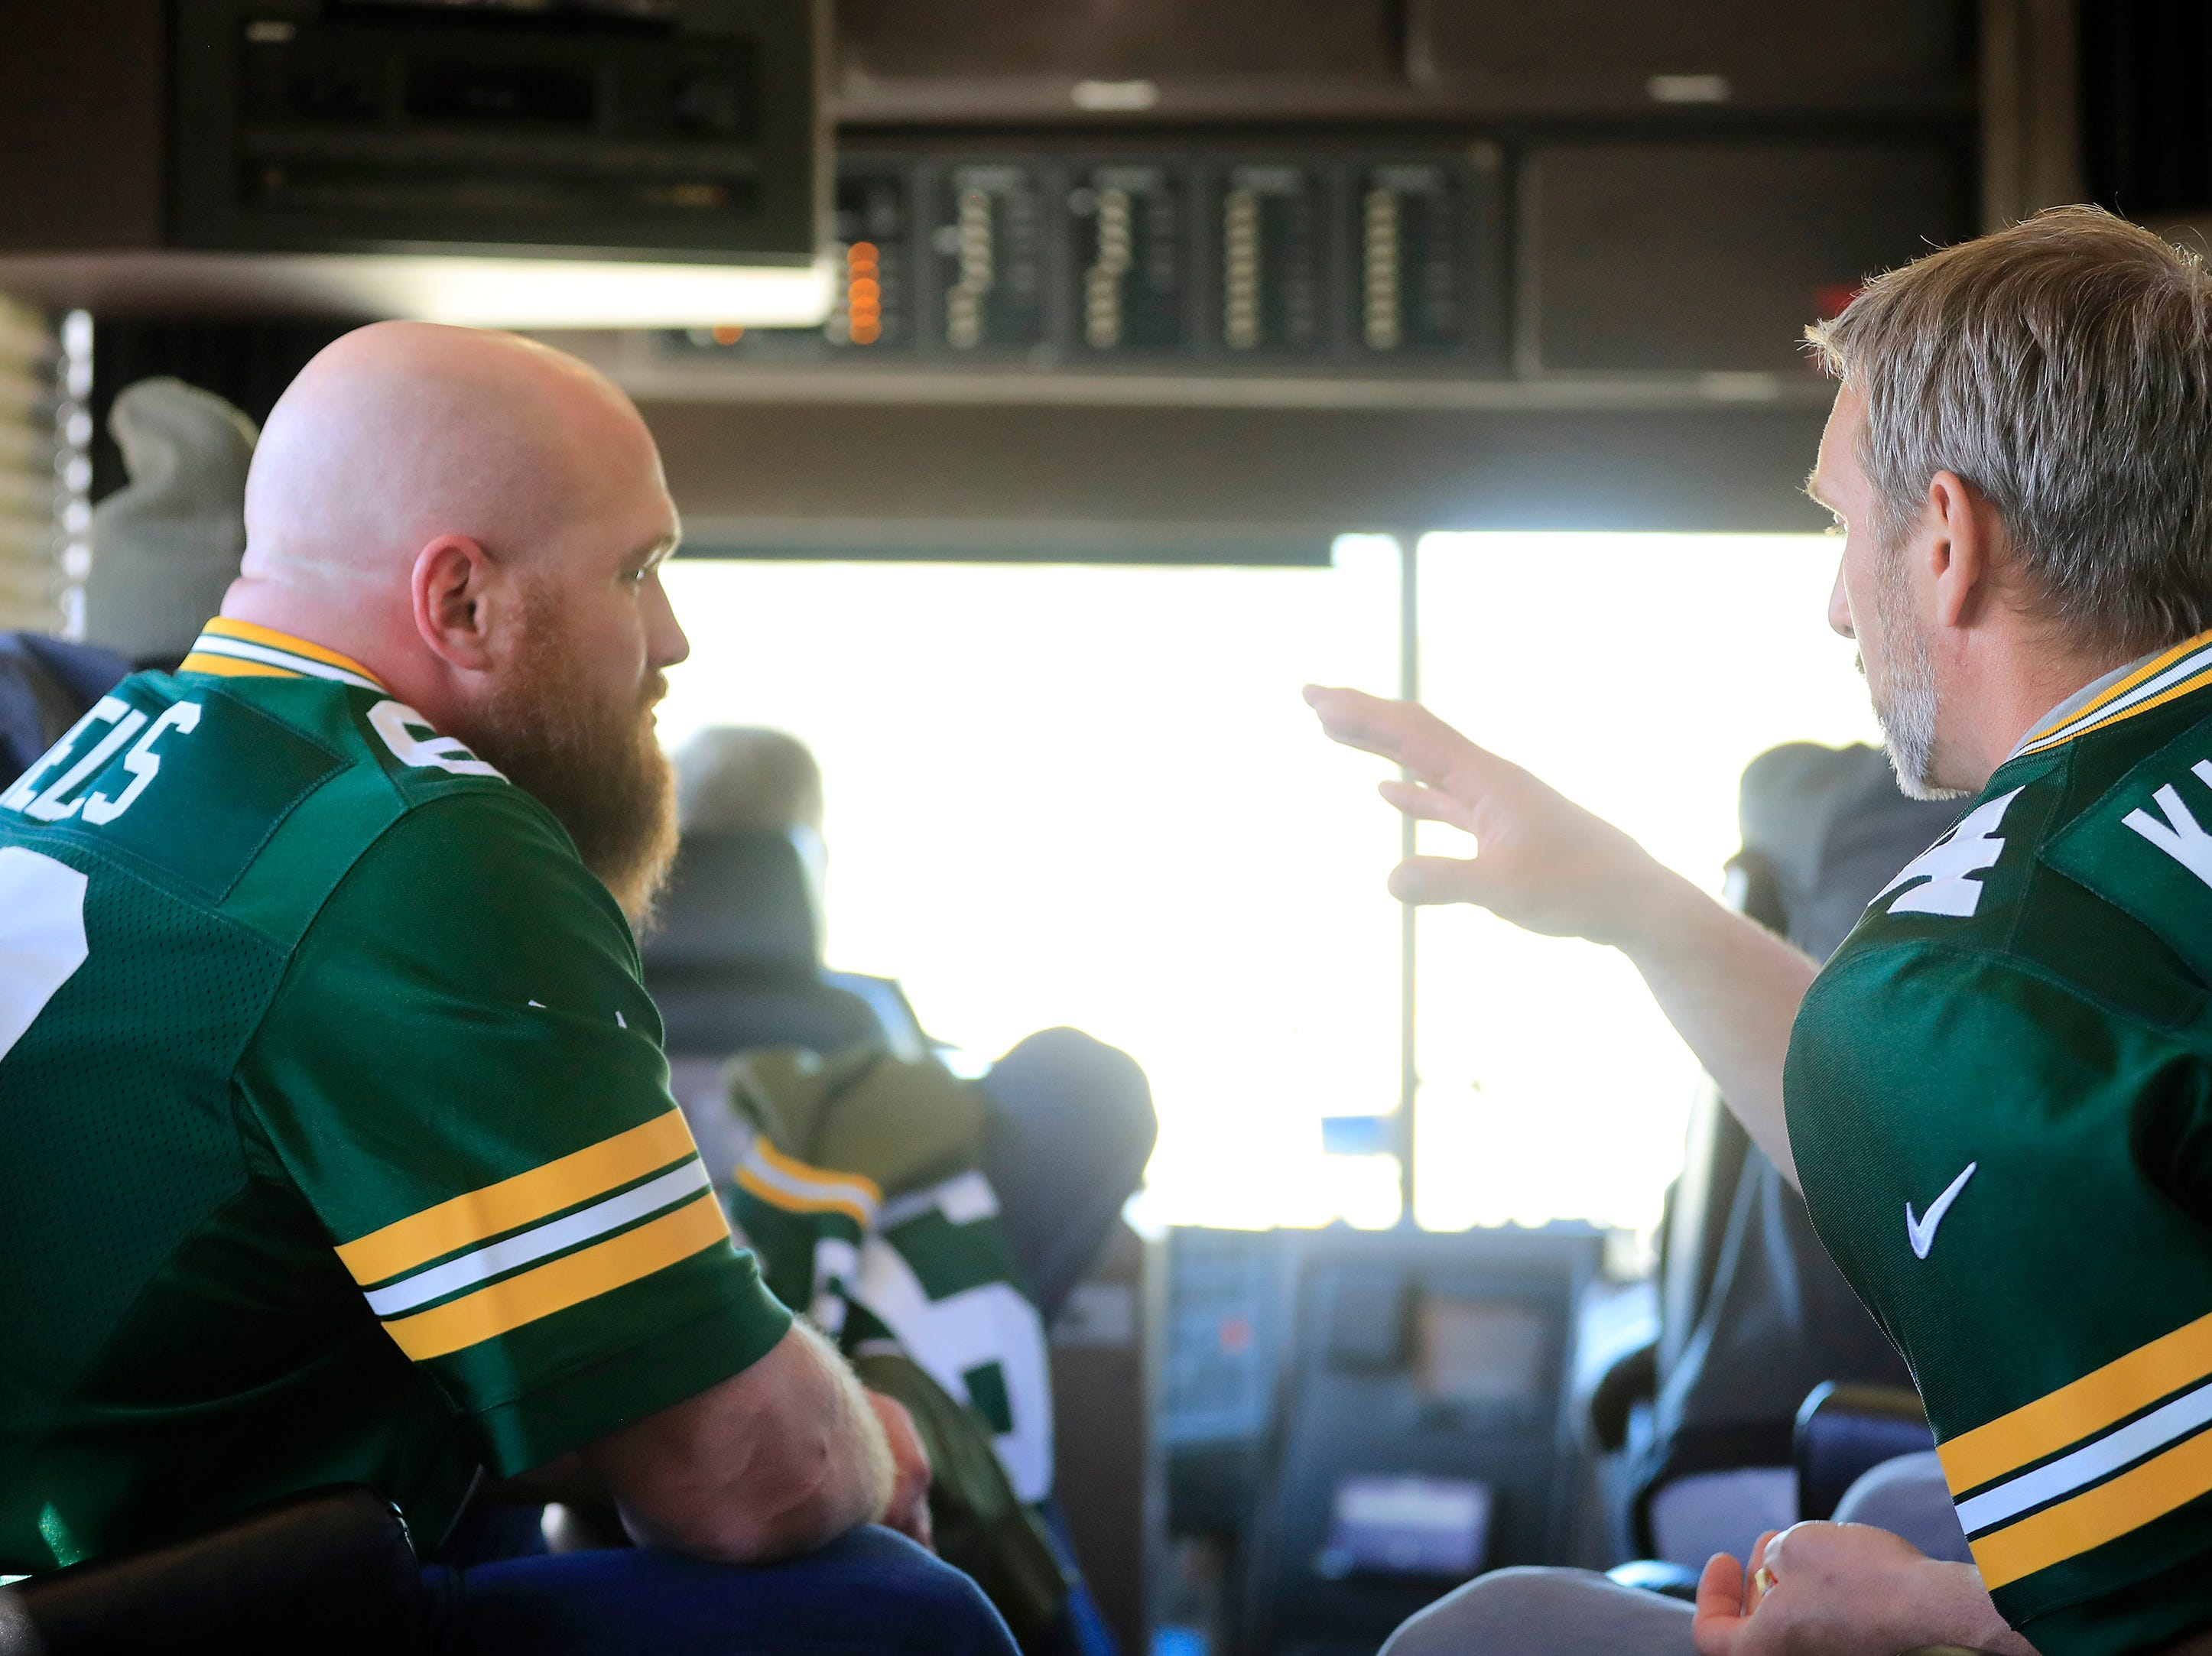 Scott Wells (left) and Aaron Kampman talk on the bus in between stops on the Packers Tailgate Tour on Tuesday, April 9, 2019 in Clintonville, Wis.